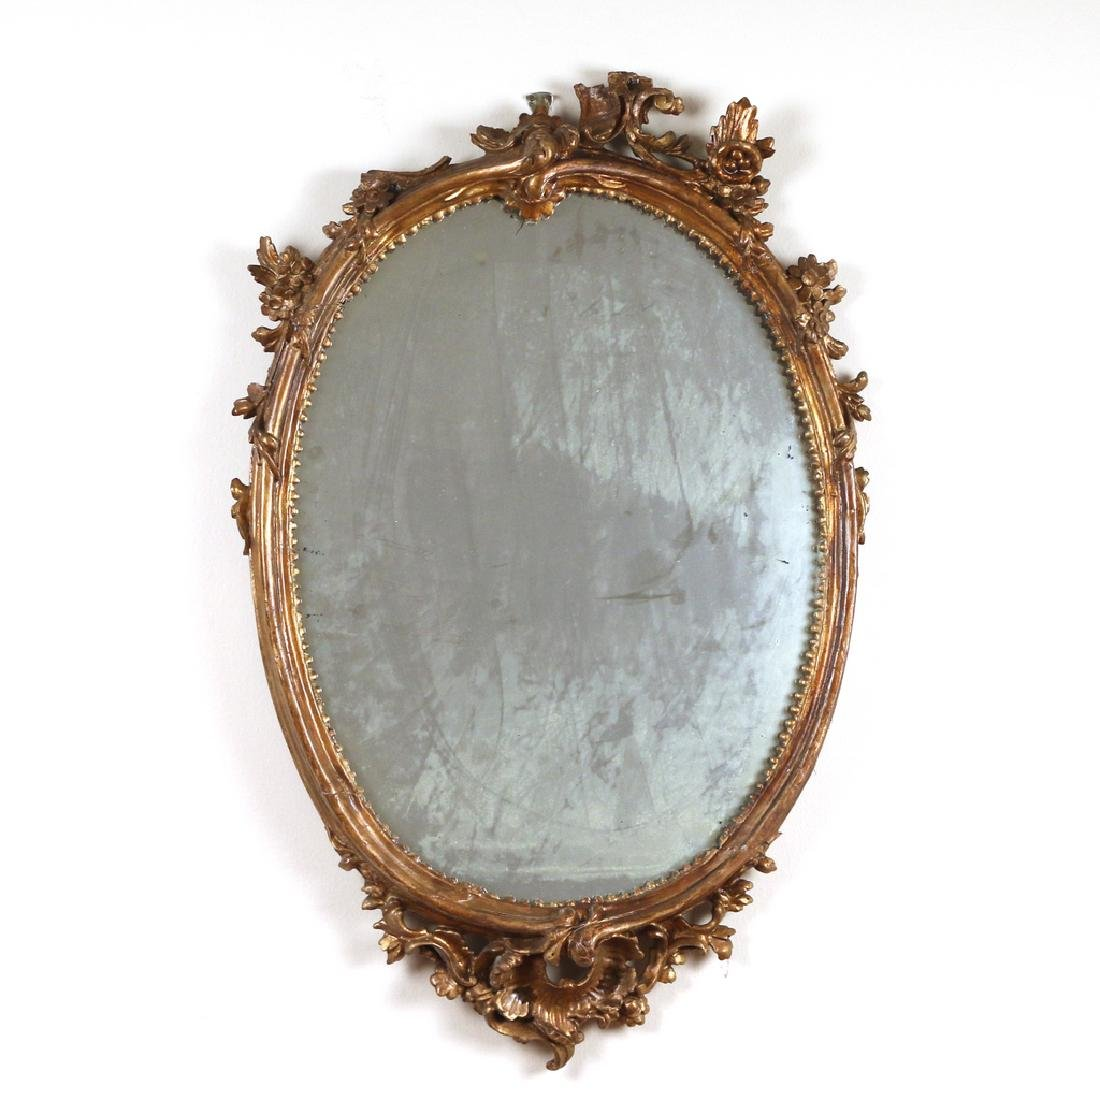 OVAL FRENCH GILT-CARVED WALL MIRROR